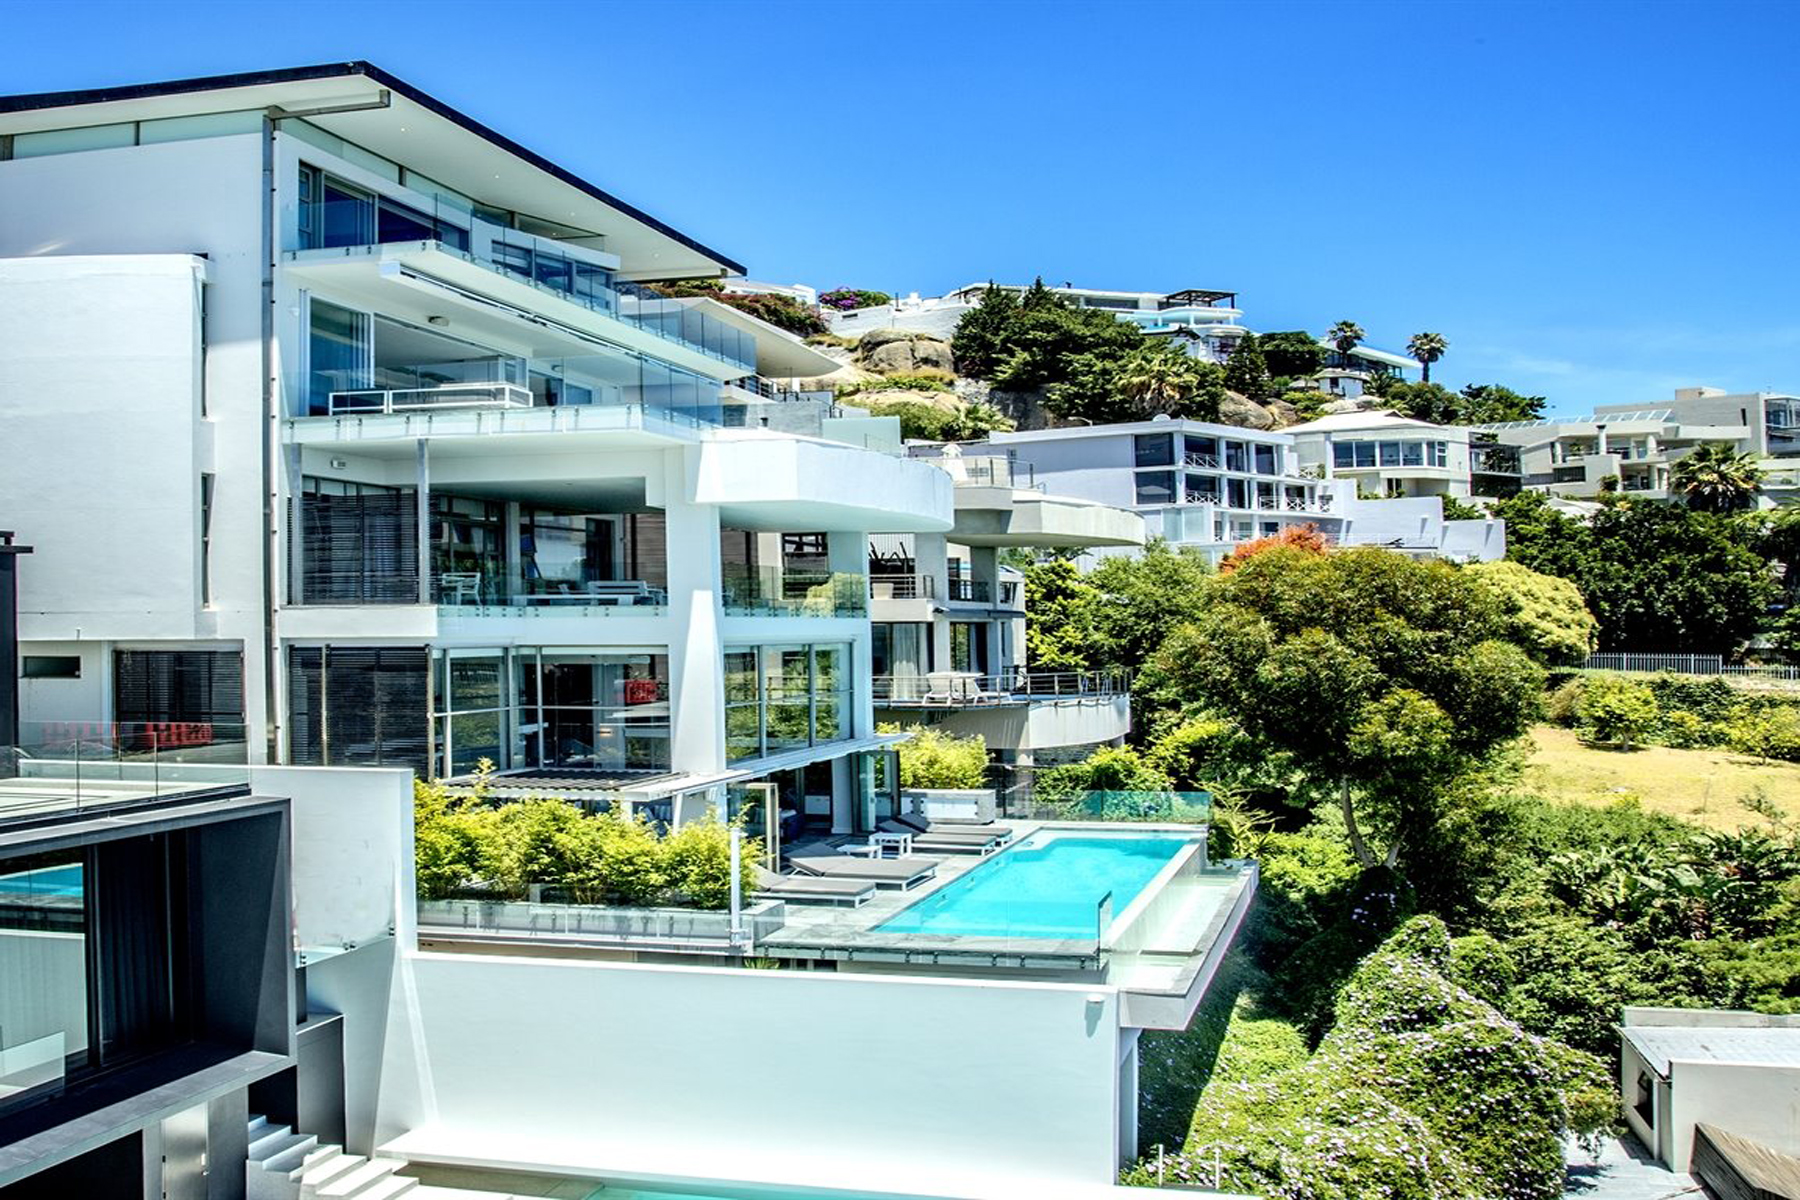 Maison unifamiliale pour l Vente à Bantry Bay Cape Town, Cap-Occidental, 8001 Afrique Du Sud